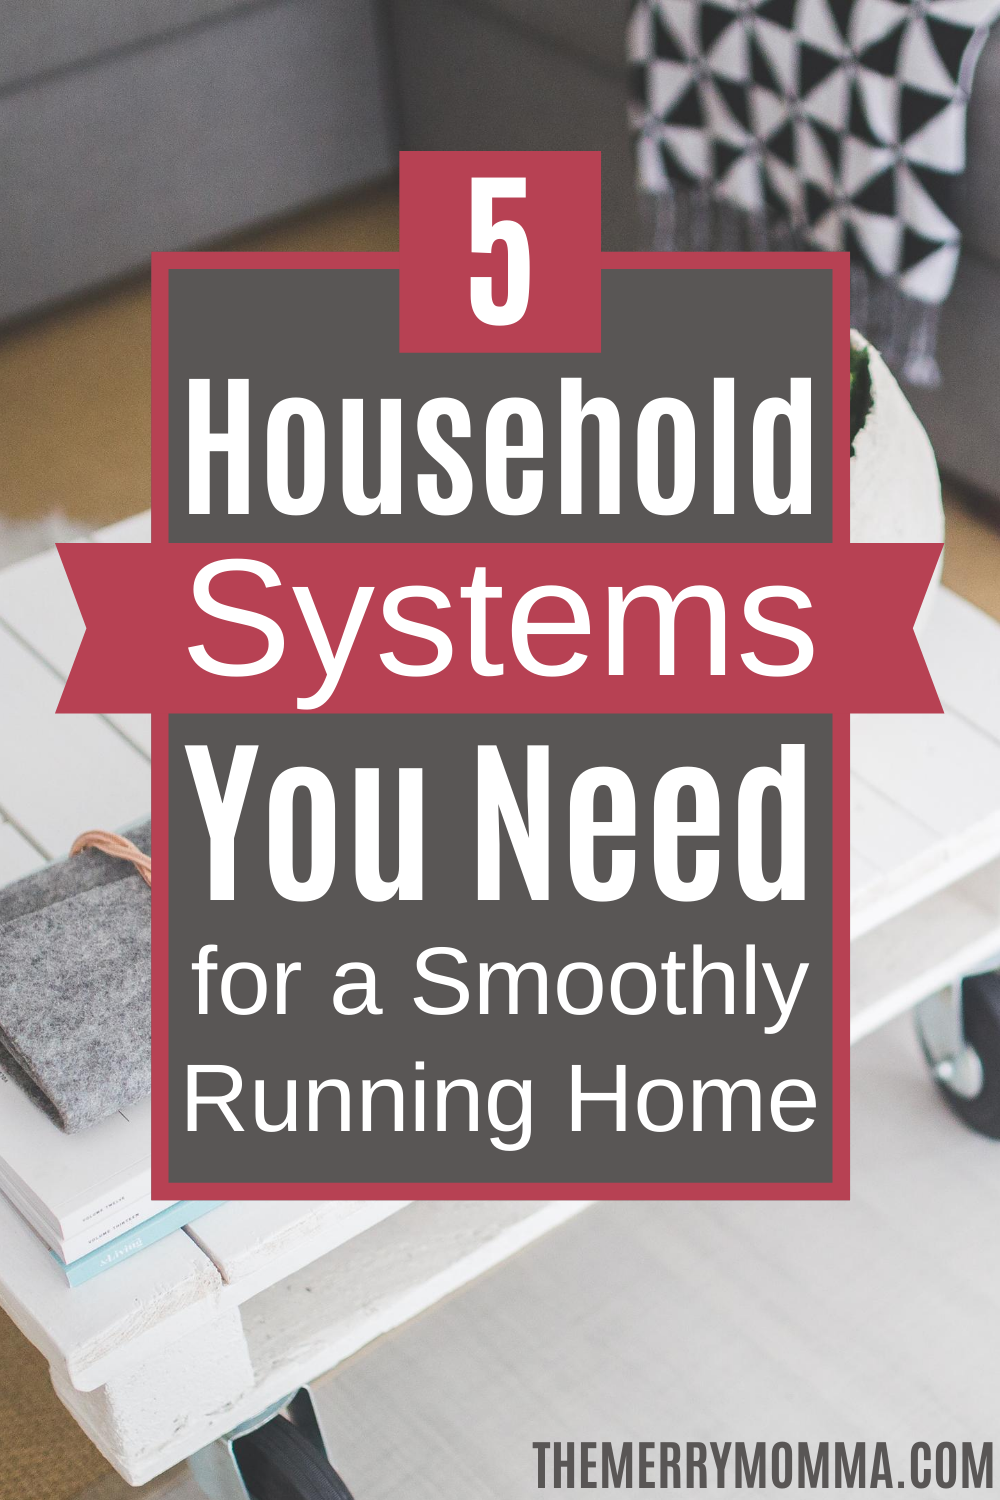 5 Household Systems You Need for a Smoothly Running Home | The Merry Momma